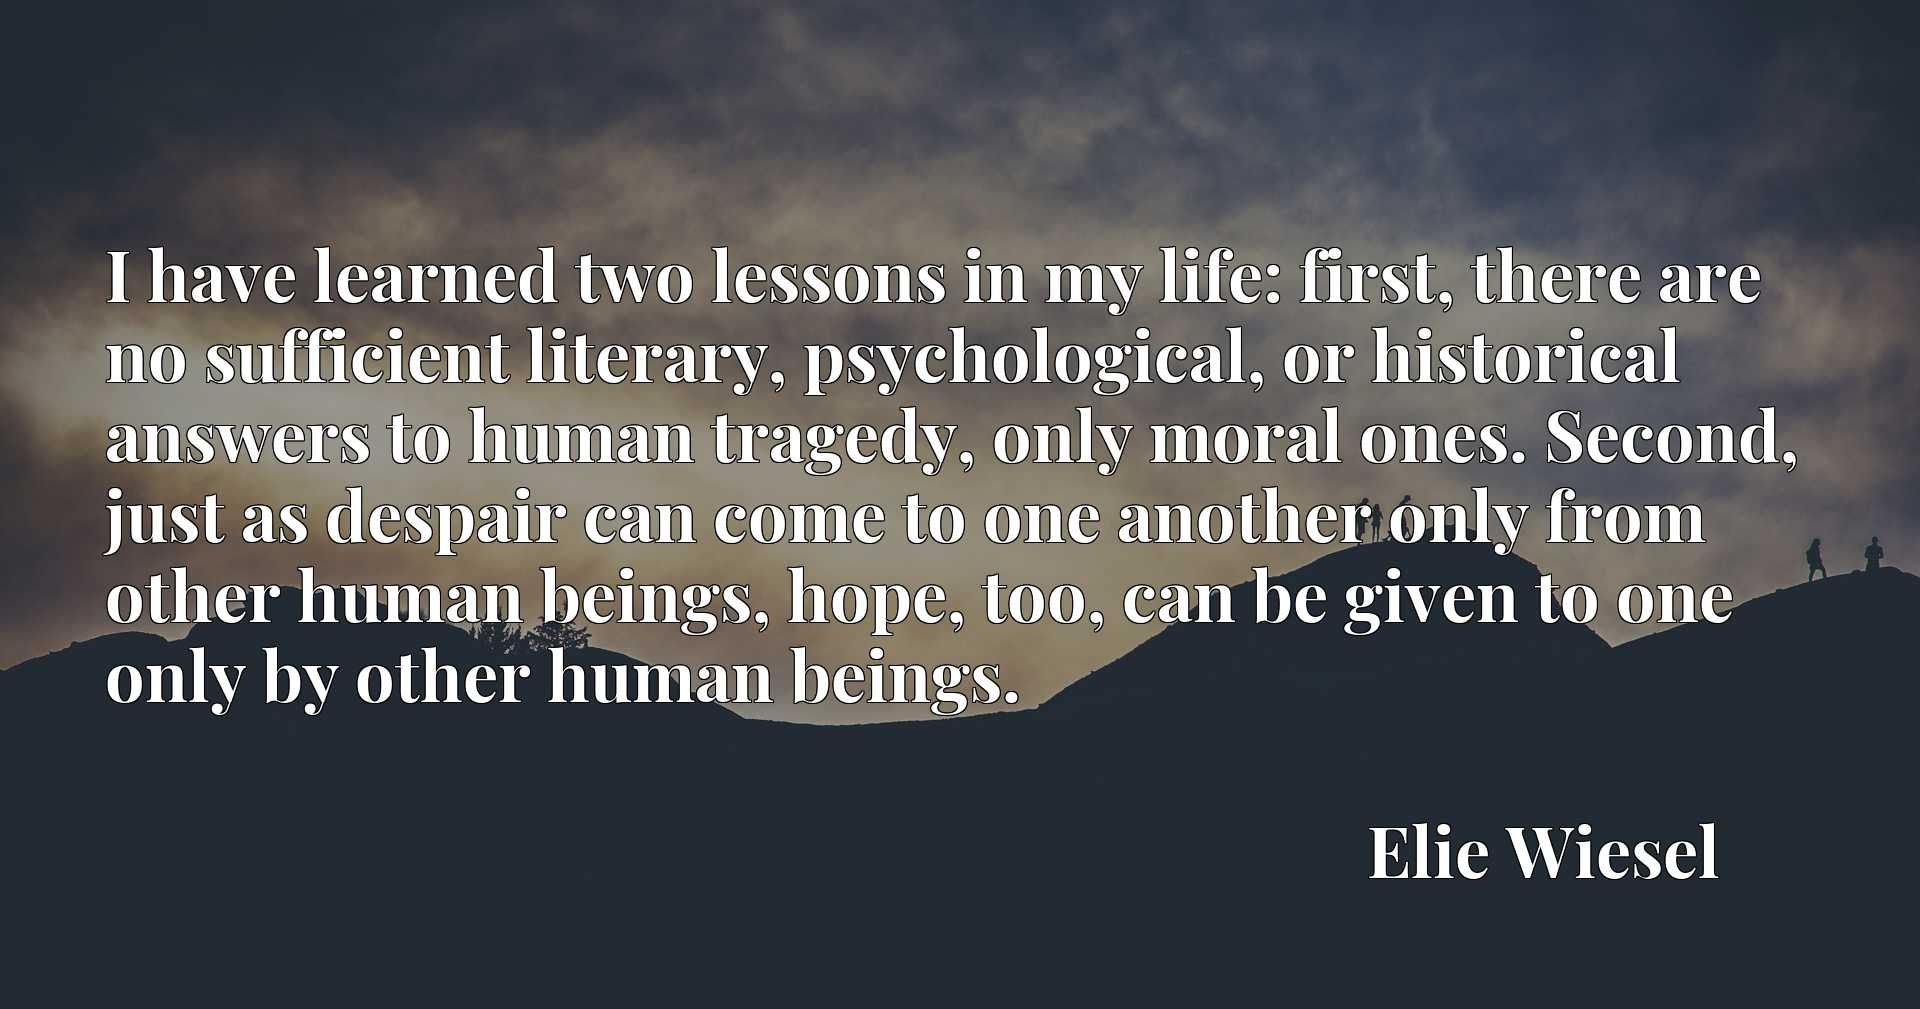 I have learned two lessons in my life: first, there are no sufficient literary, psychological, or historical answers to human tragedy, only moral ones. Second, just as despair can come to one another only from other human beings, hope, too, can be given to one only by other human beings.